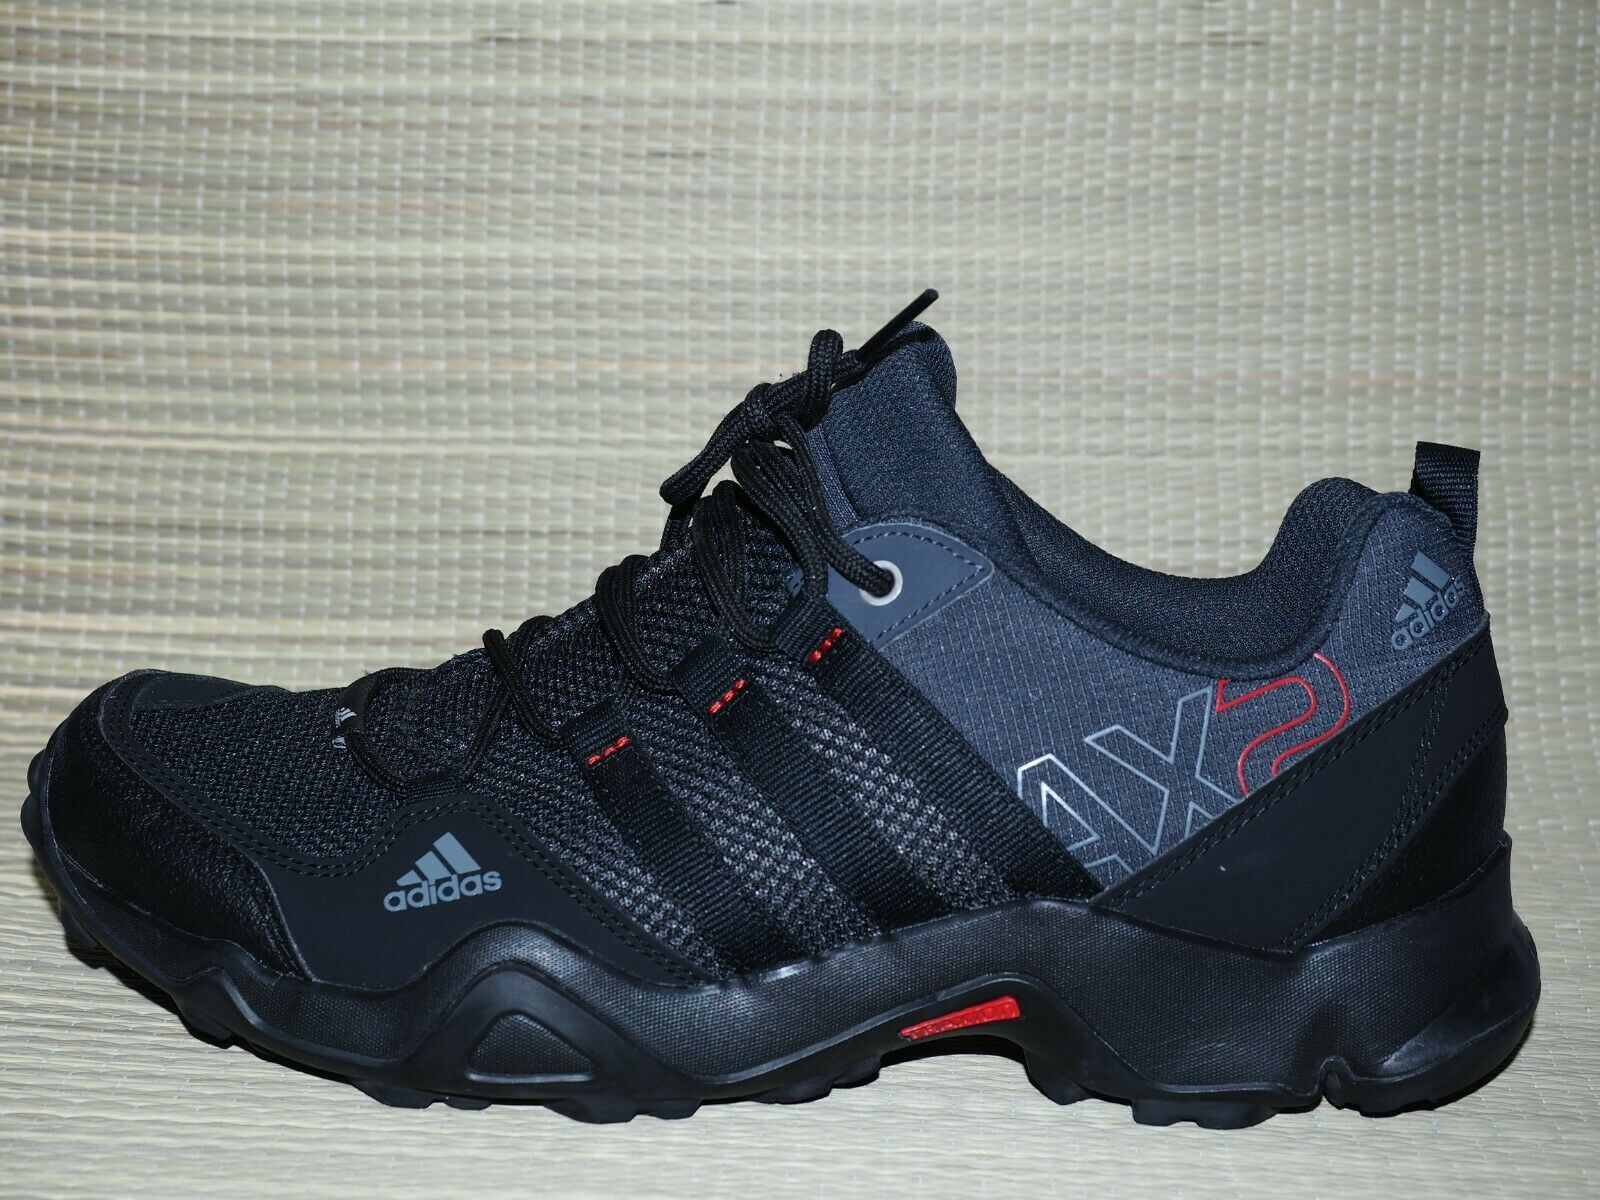 Adidas Traxion AX2 Outdoor Men US 9.5